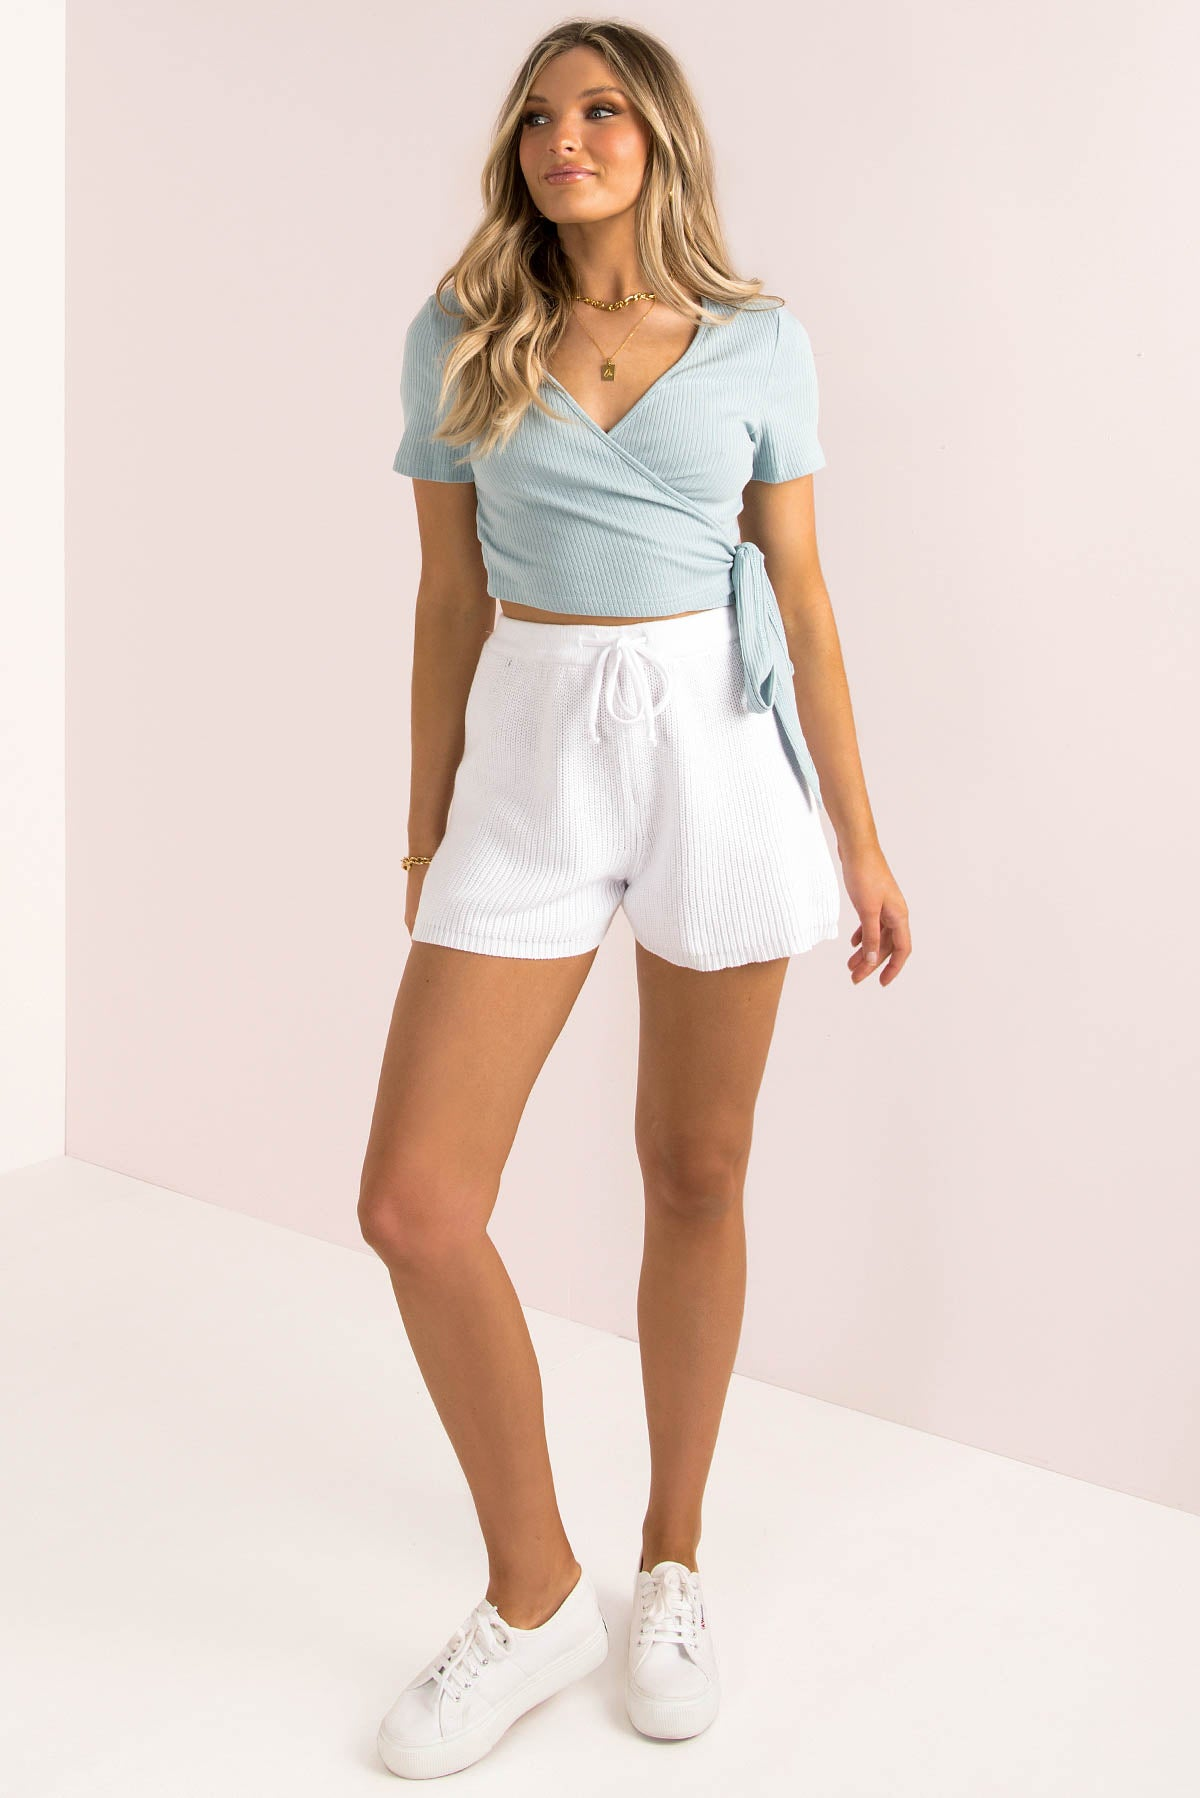 Bessie Top / Blue